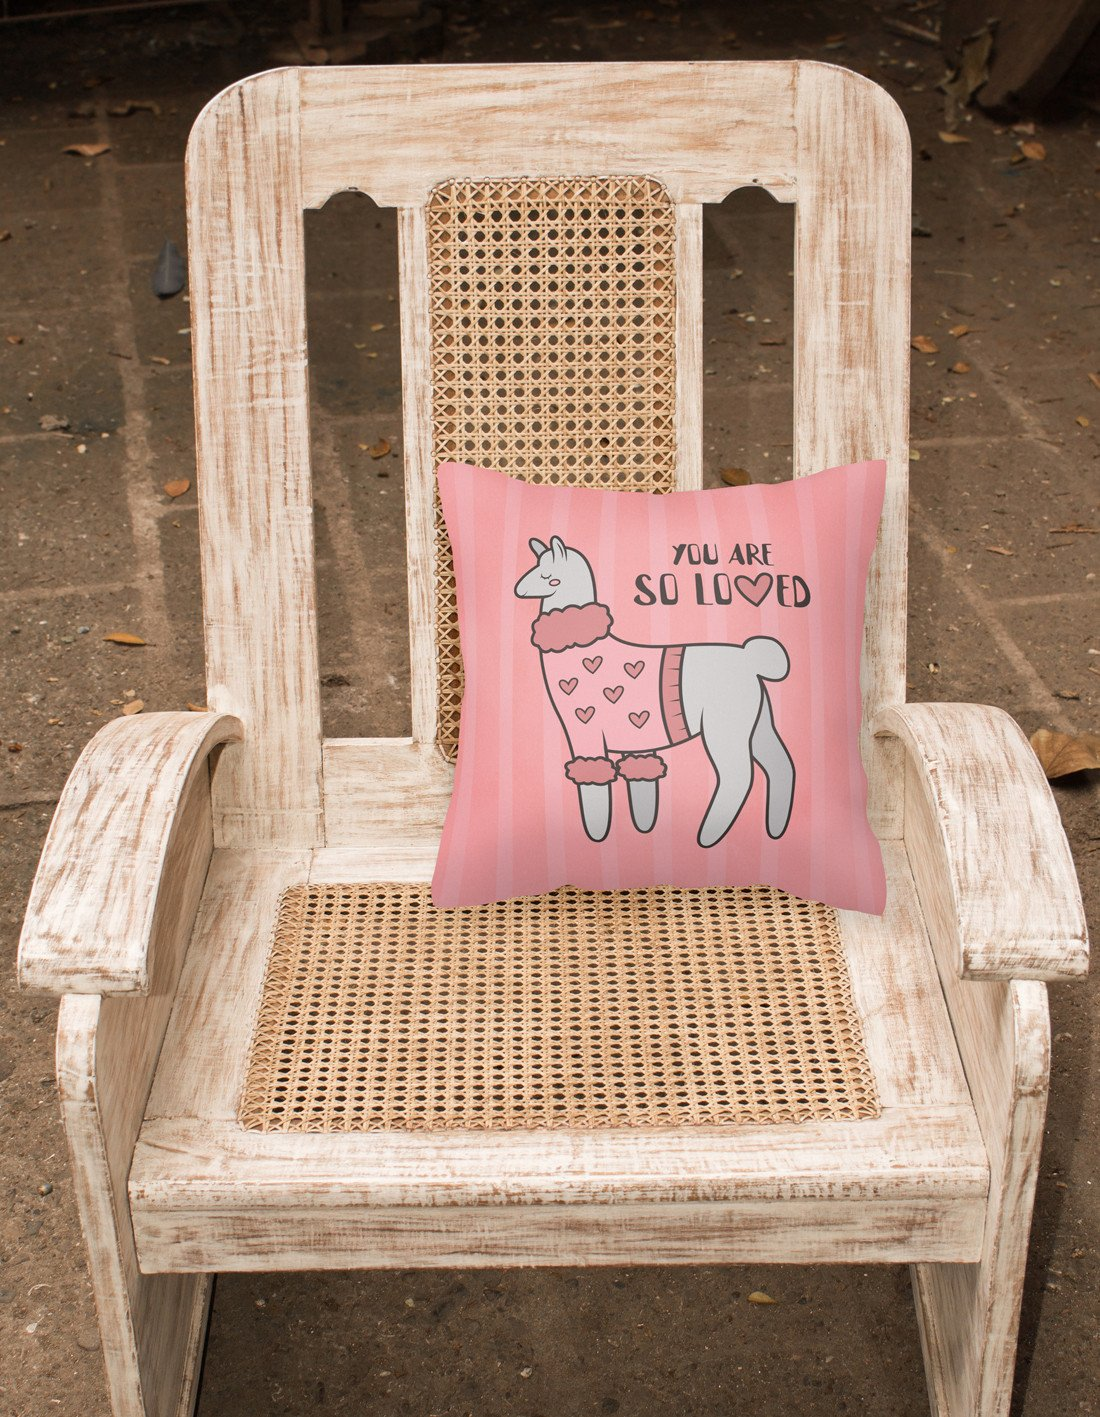 Nursery You are so Loved Llama Fabric Decorative Pillow BB7469PW1818 by Caroline's Treasures